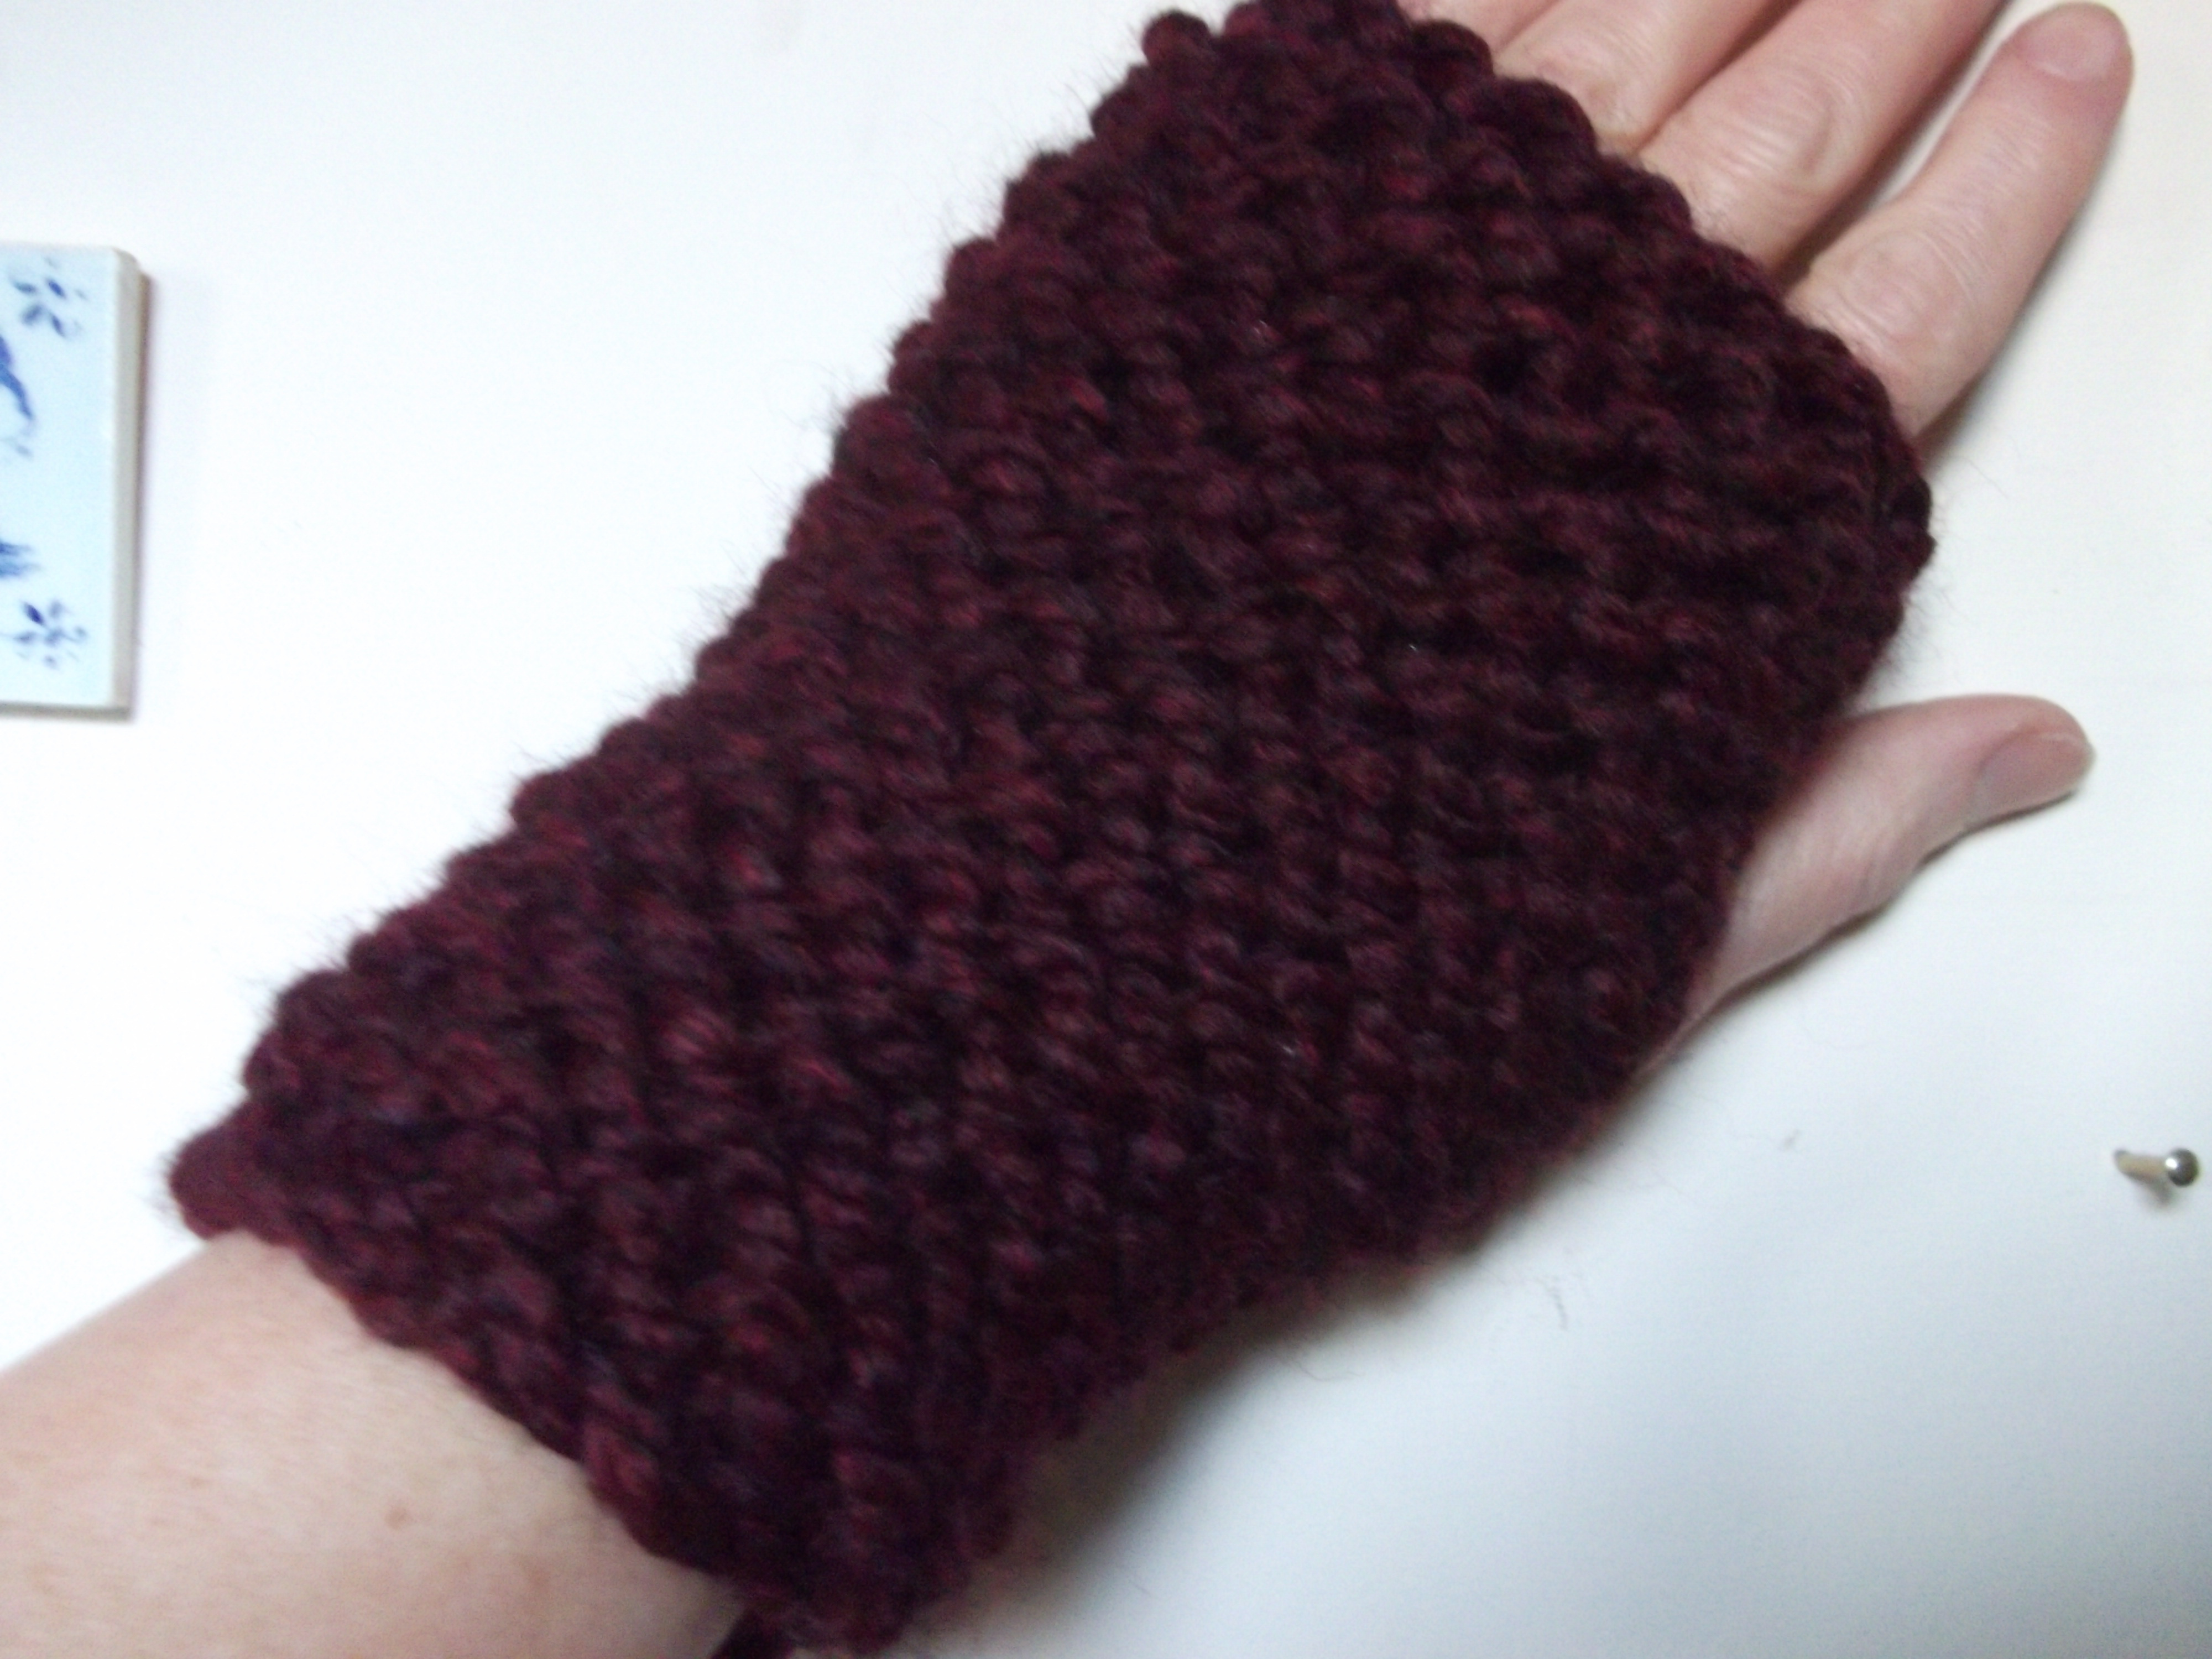 Quick-to-Knit Headband and Fingerless Mitts | Something for (almost ...